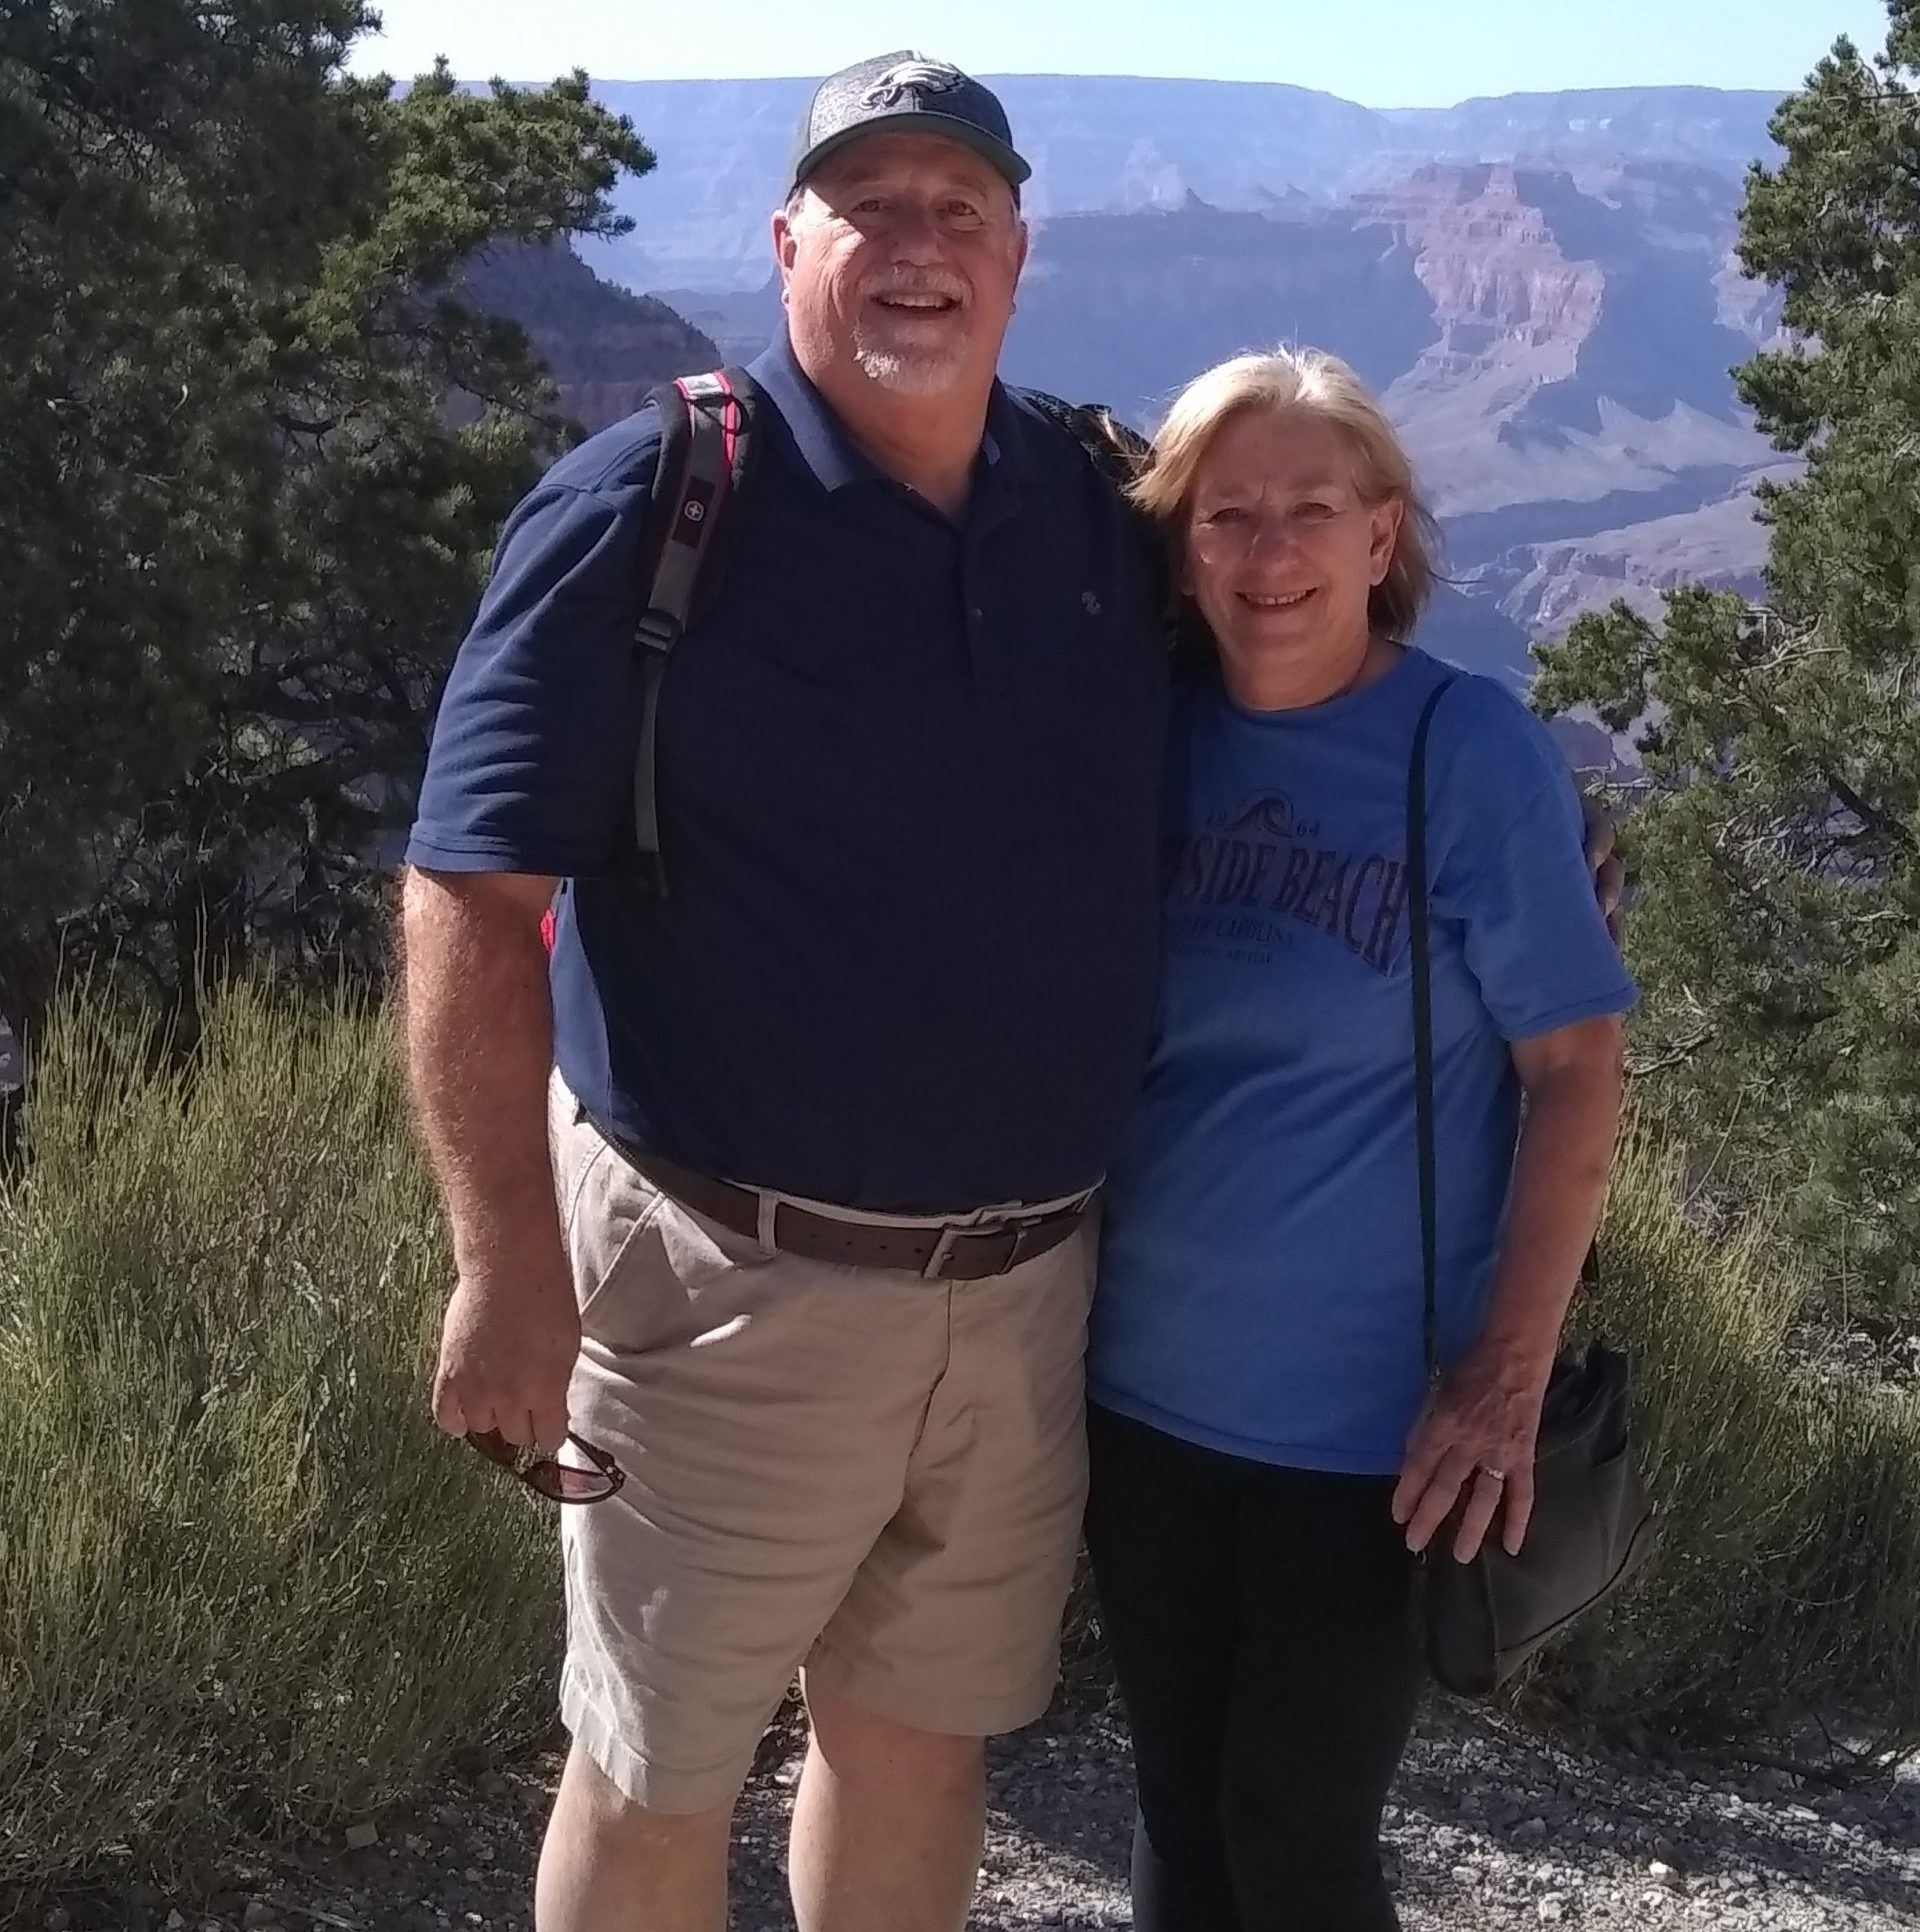 Volunteer Spotlight: Rhonda and Rick